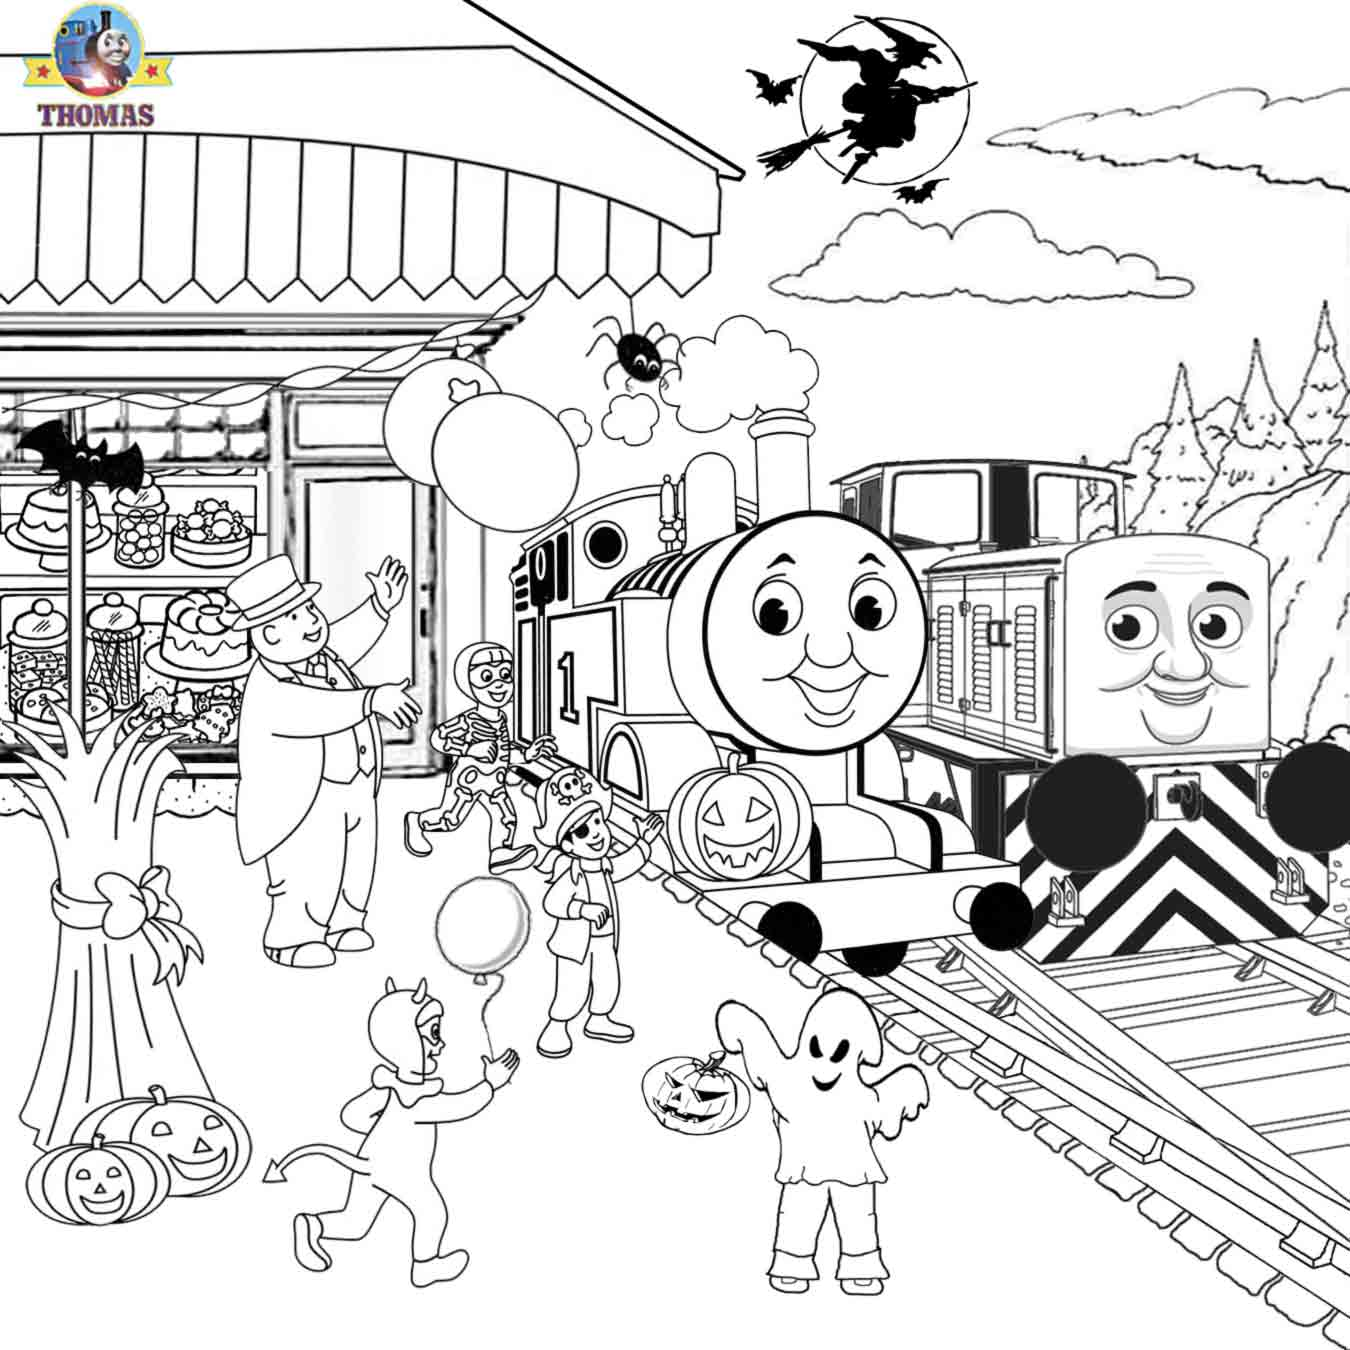 thomas and friends coloring coloring book il trenino thomas coloring friends and thomas